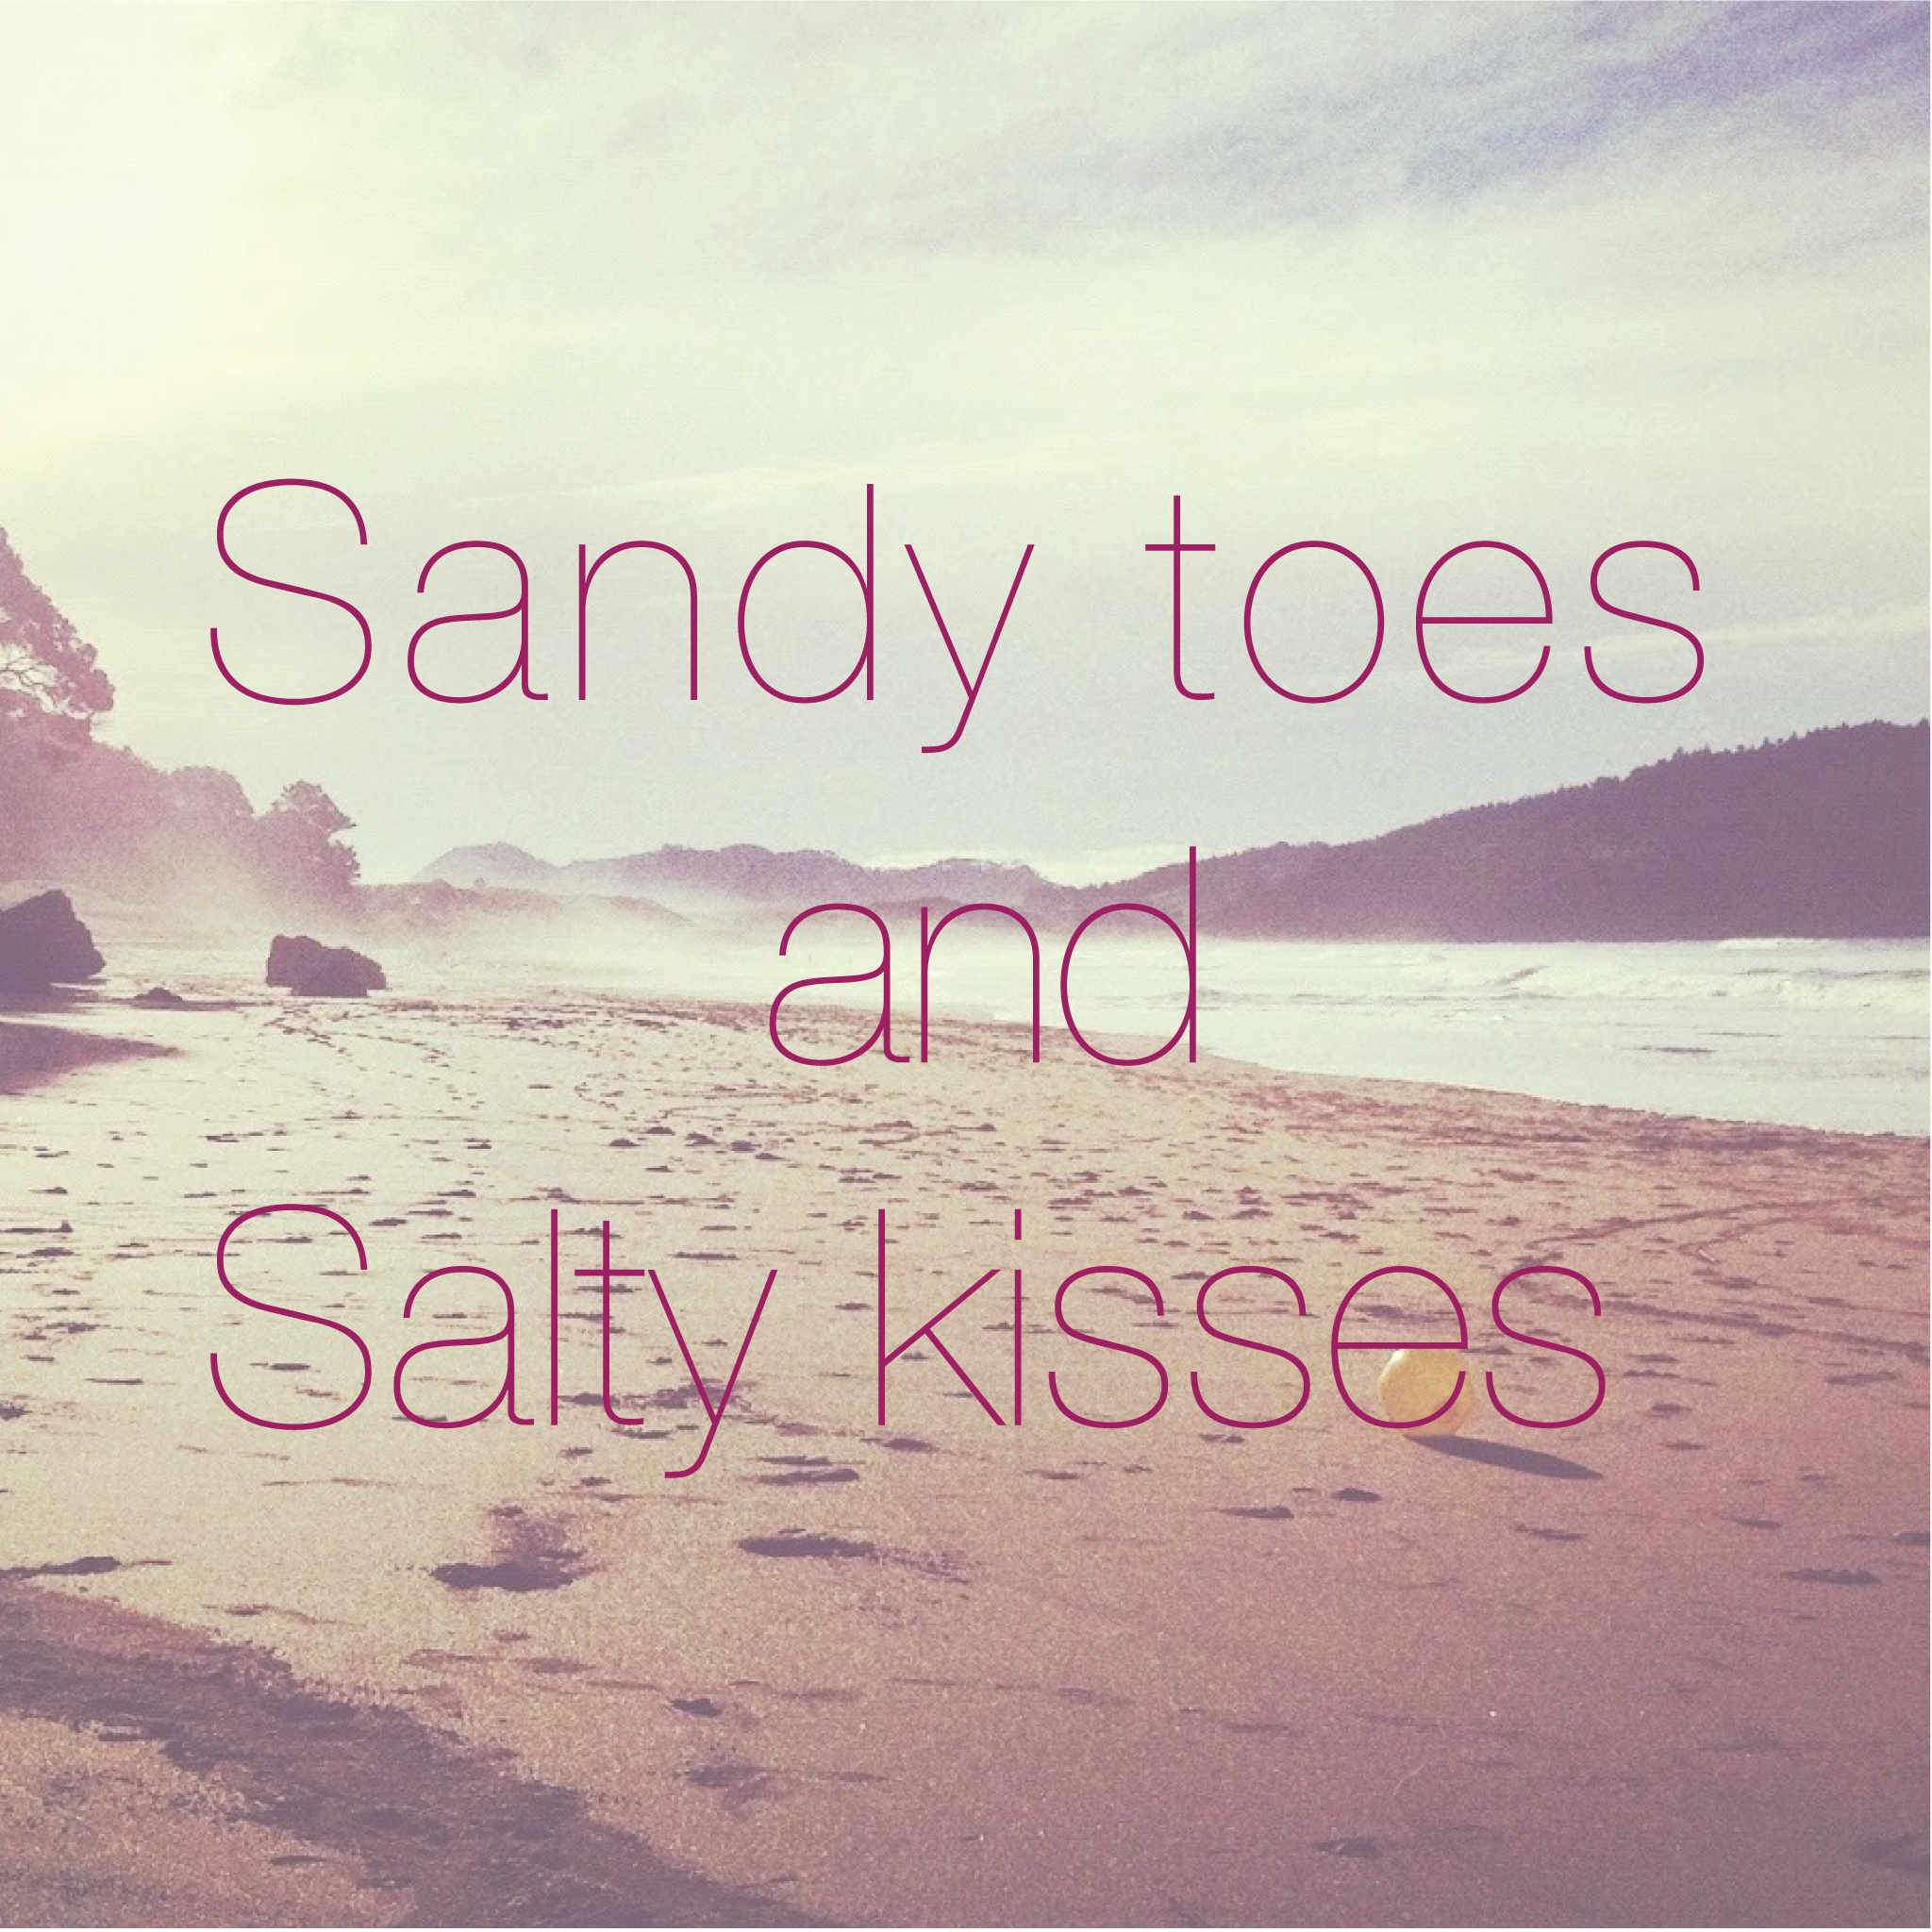 Sandy toes and salty kisses! | Heart quotes, Love quotes ...